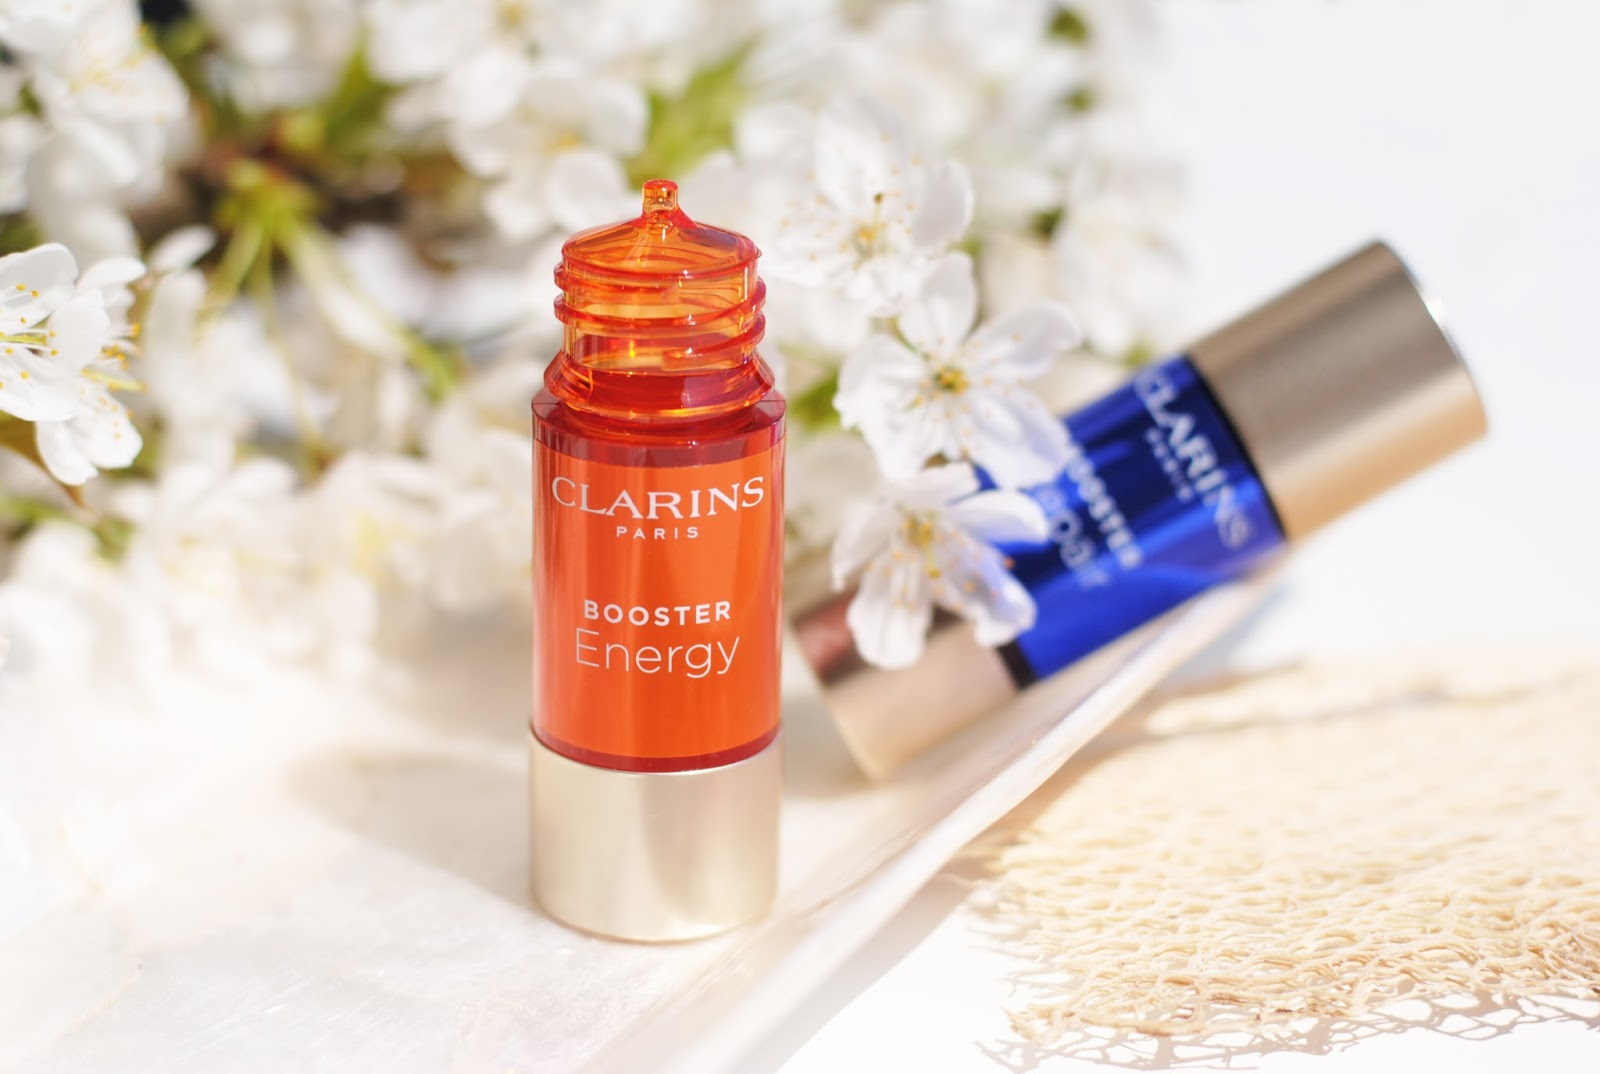 clarins energy repair detox booster review